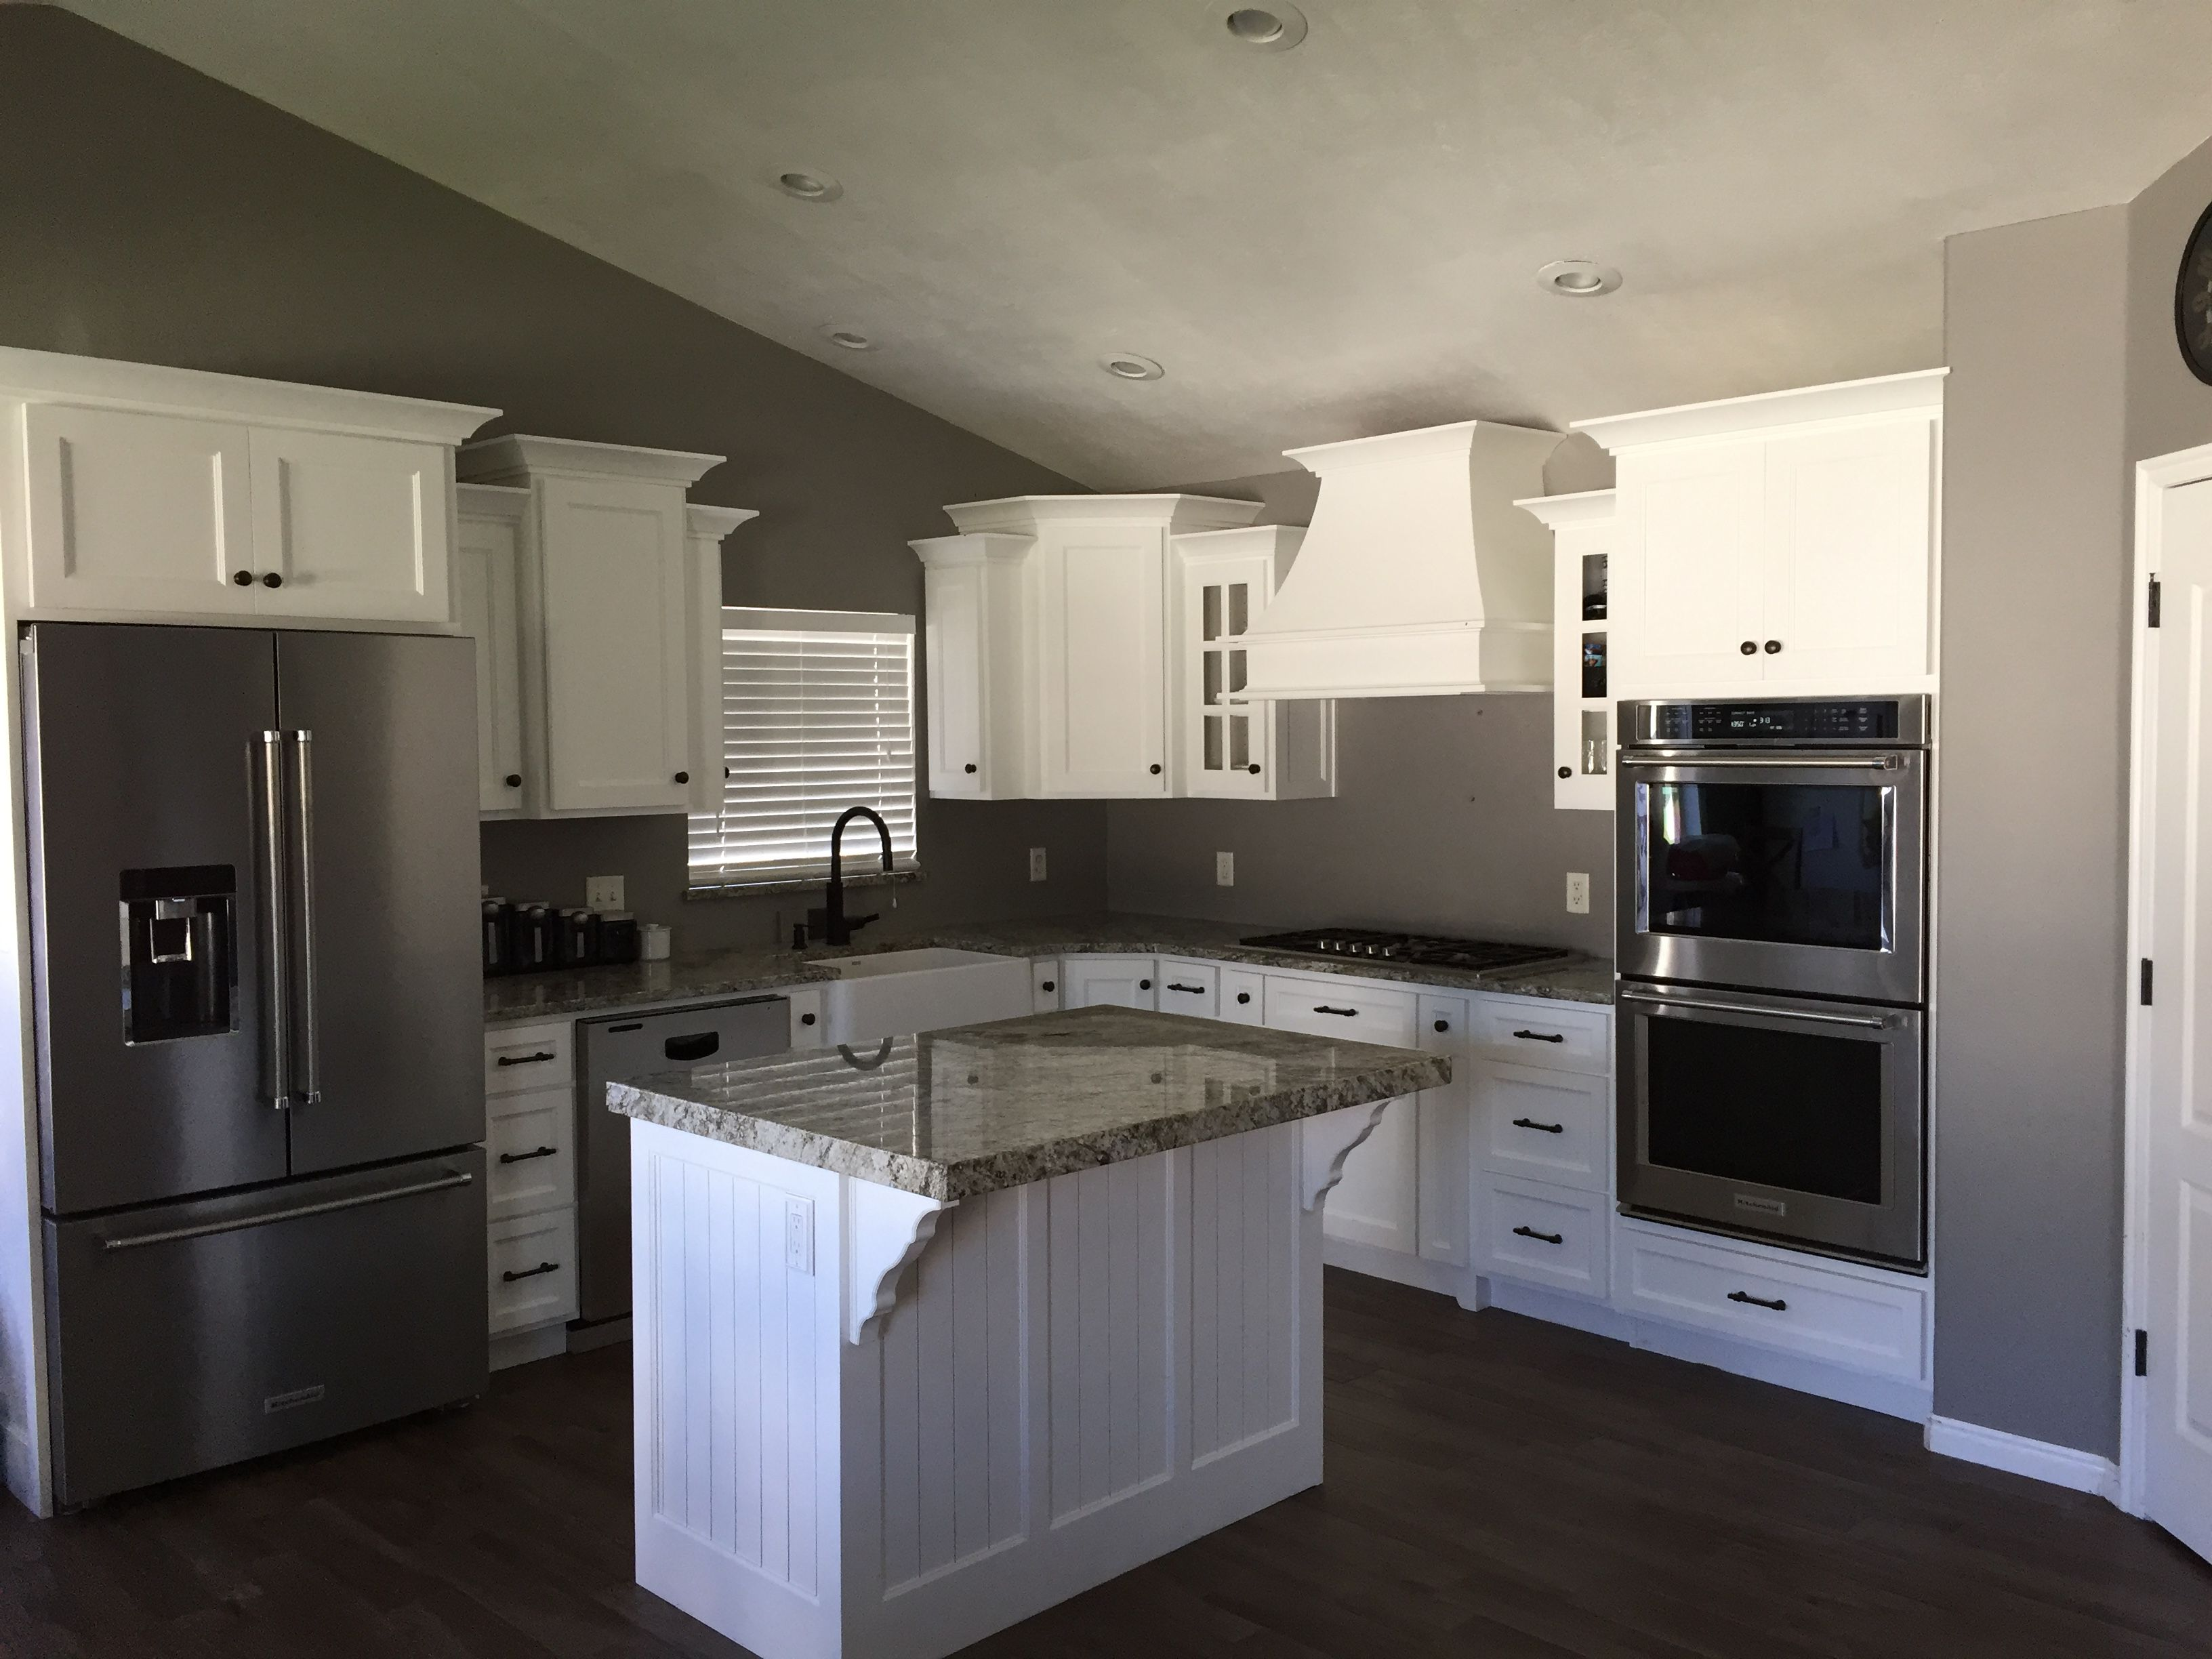 Grey Walls With White Kitchen Cabinets And Oil Rubbed Bronze